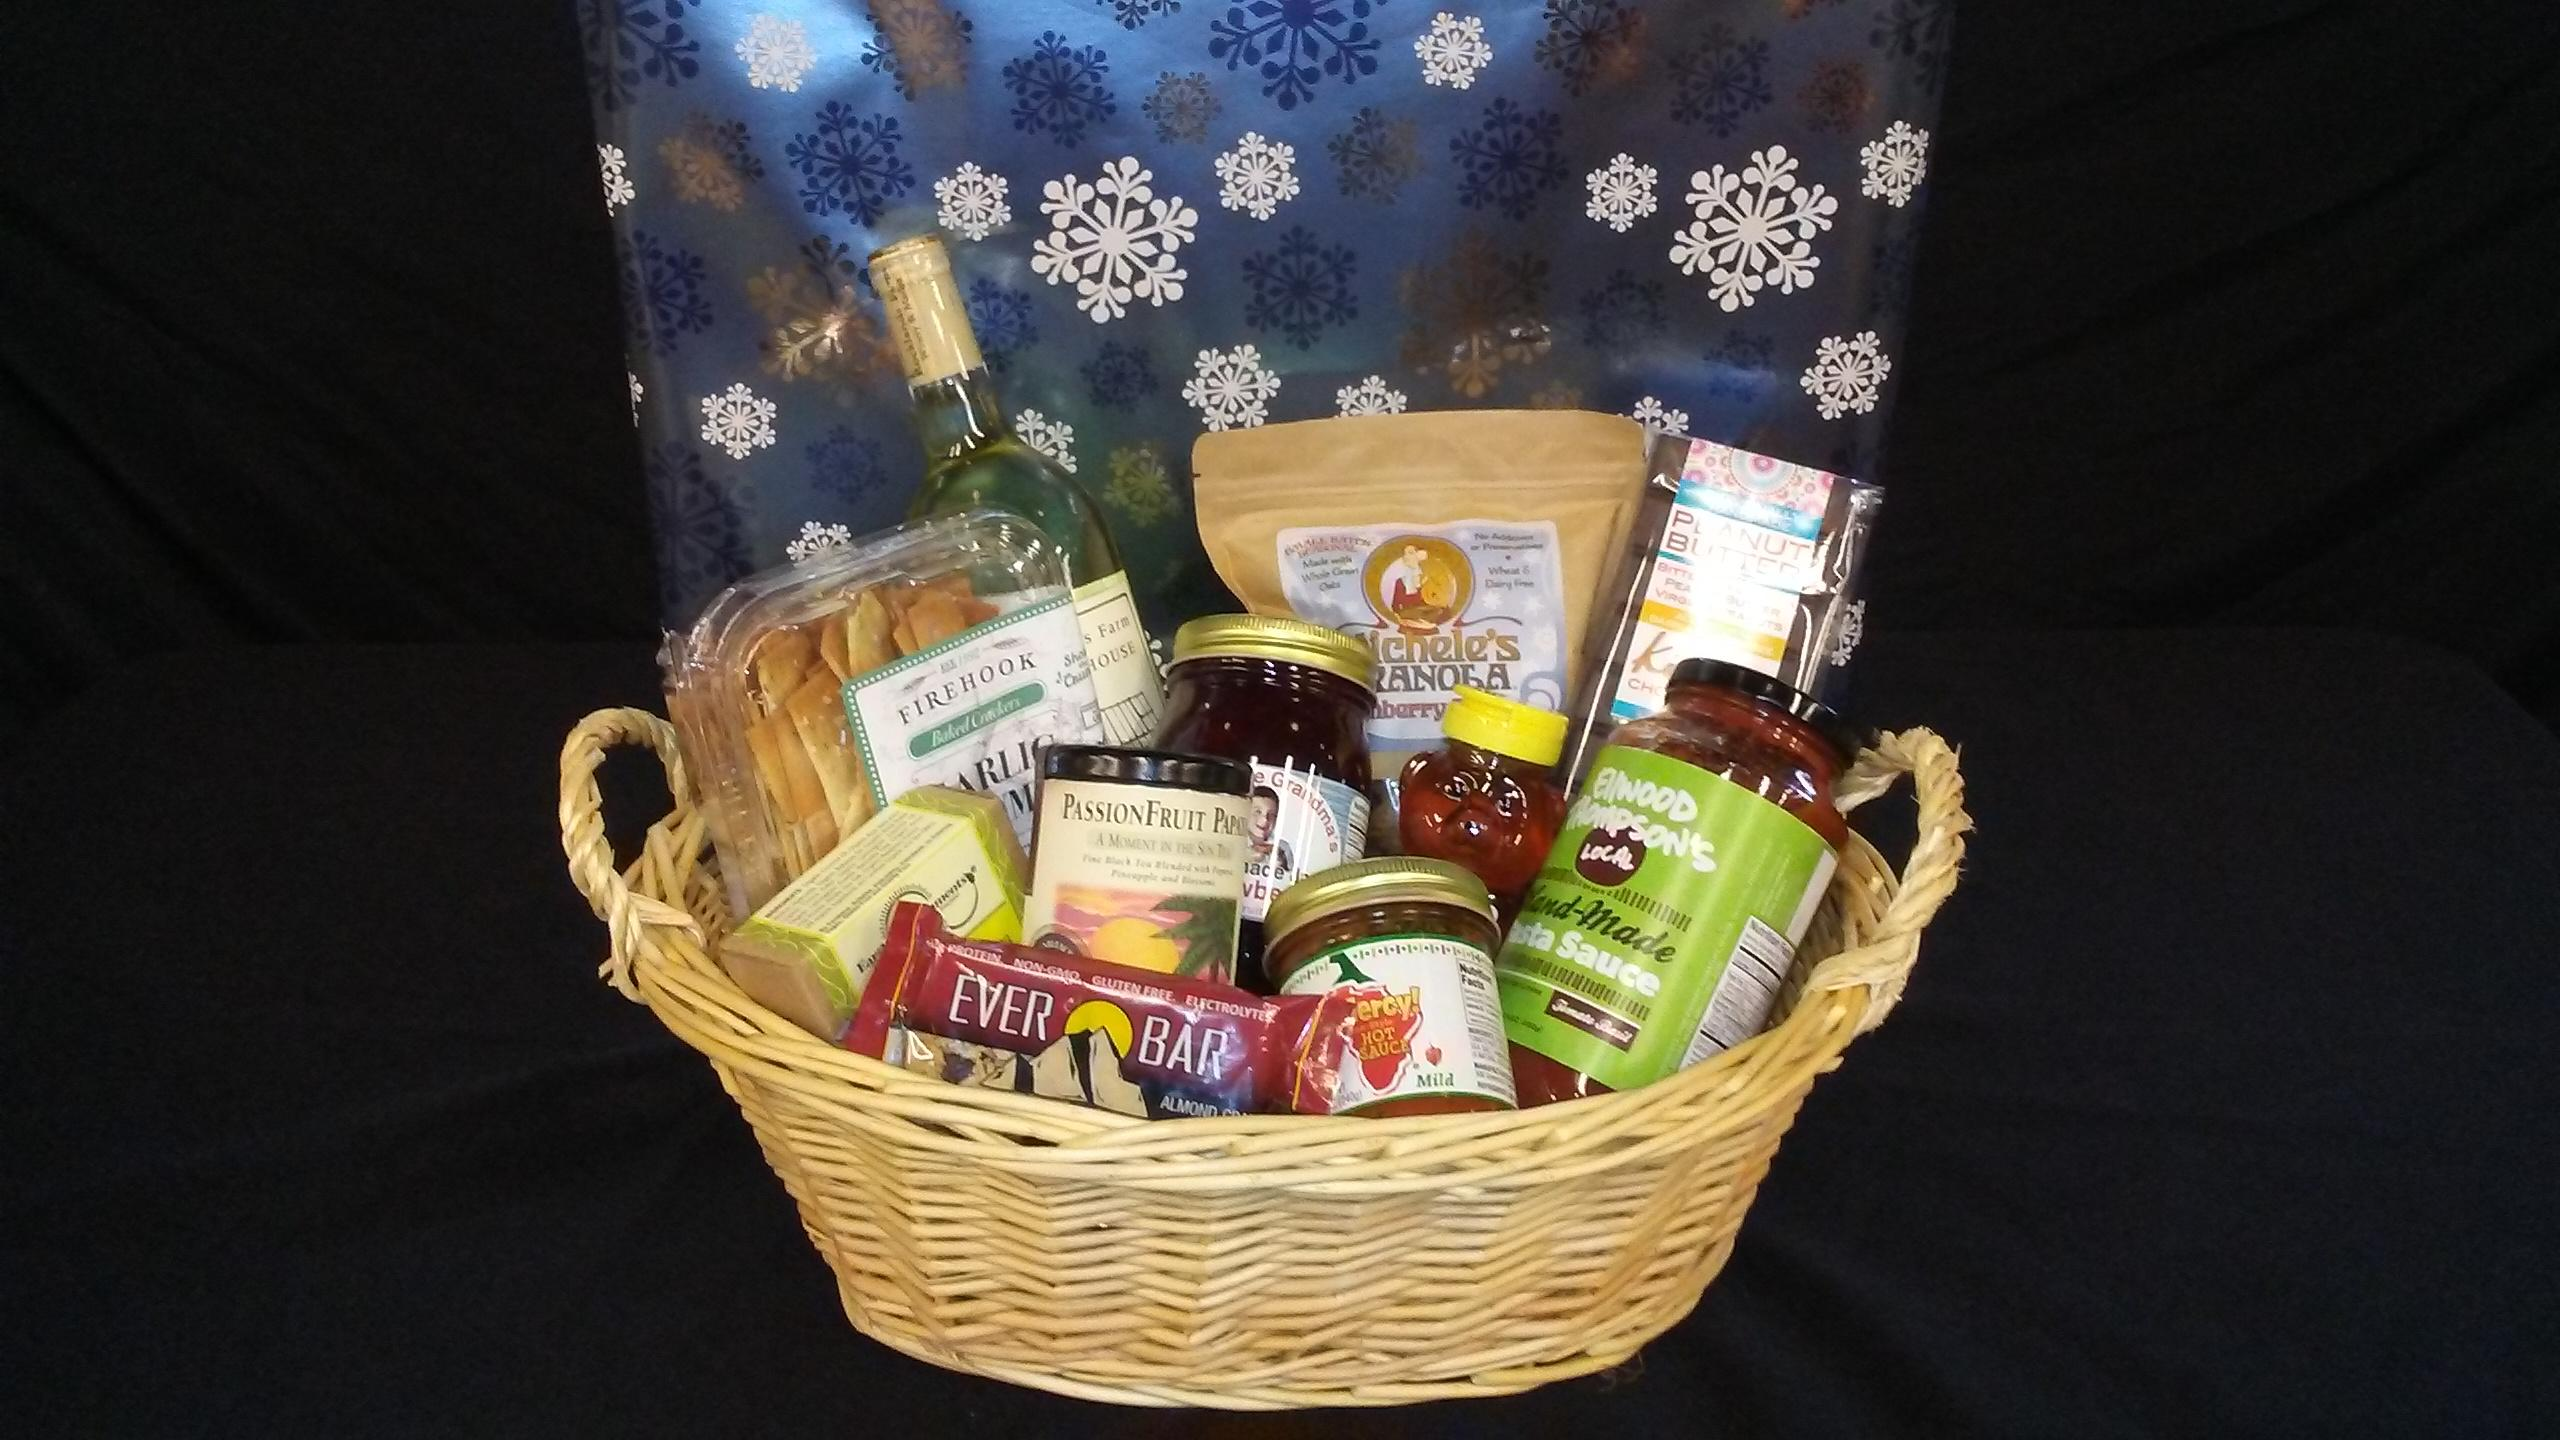 Meet the Locals Gift Basket from Dawson's Market // Price: $89.99 // Buy in store // www.dawsonsmarket.com // (Image: Dawson's Market)